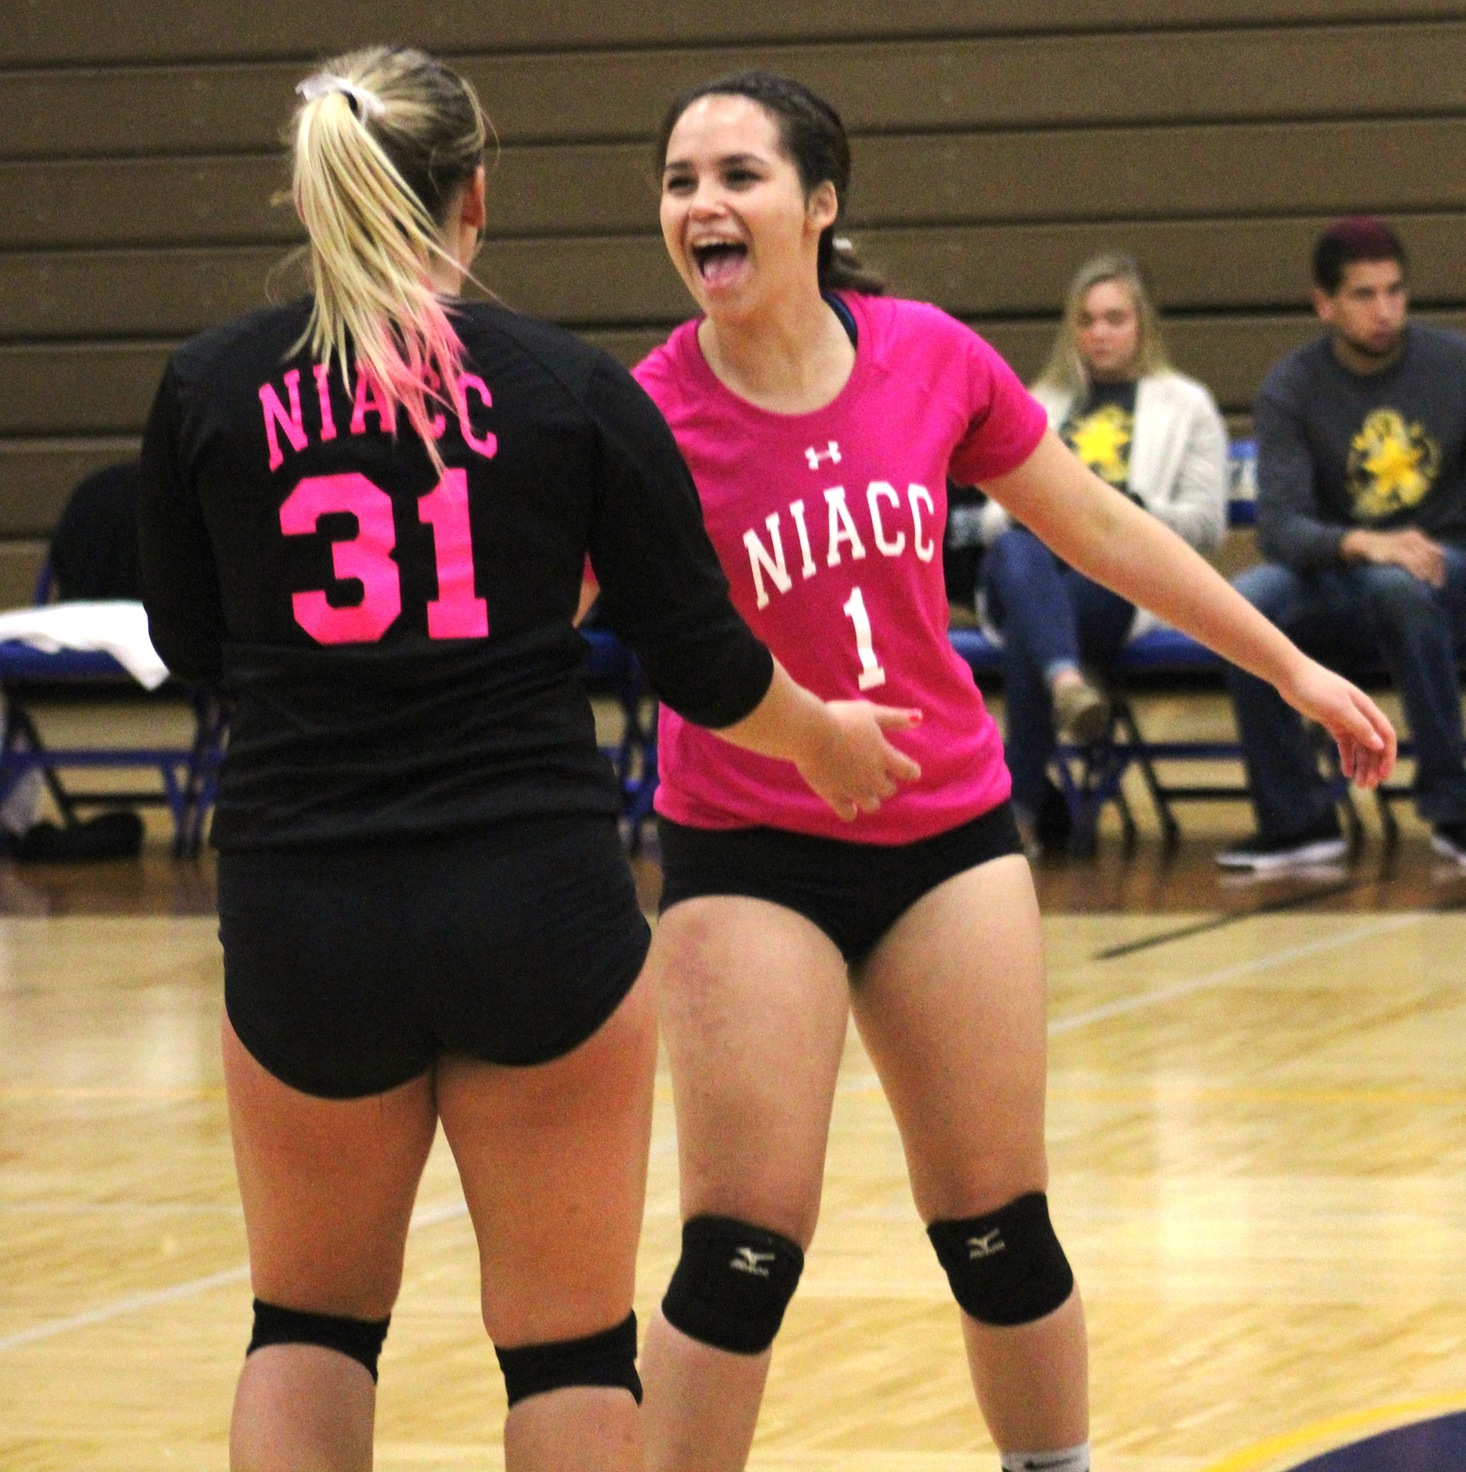 NIACC's Kyra Marquez (right) and Sammi Hyde celebrate a point in Wednesday's match.